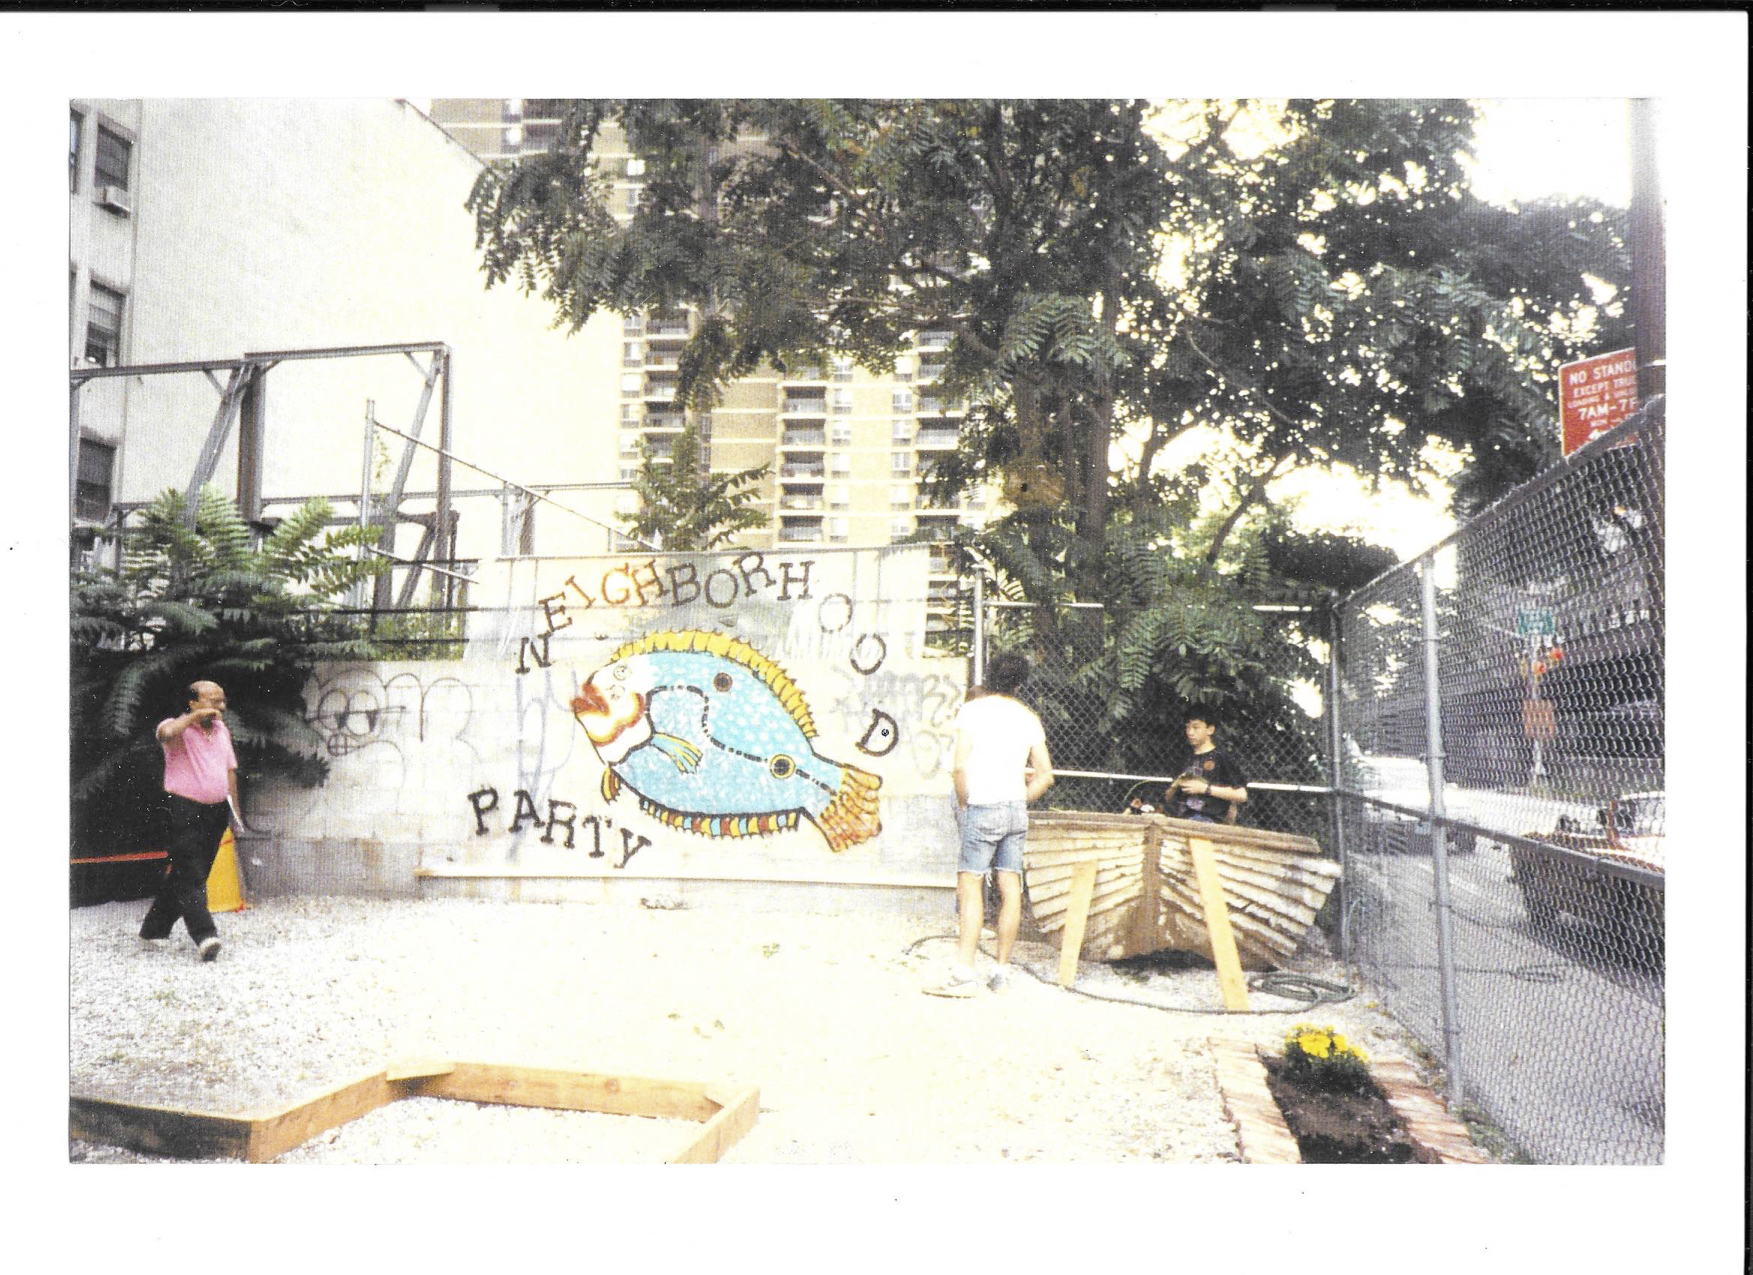 The Beginnings of FishBridge Park, 1991